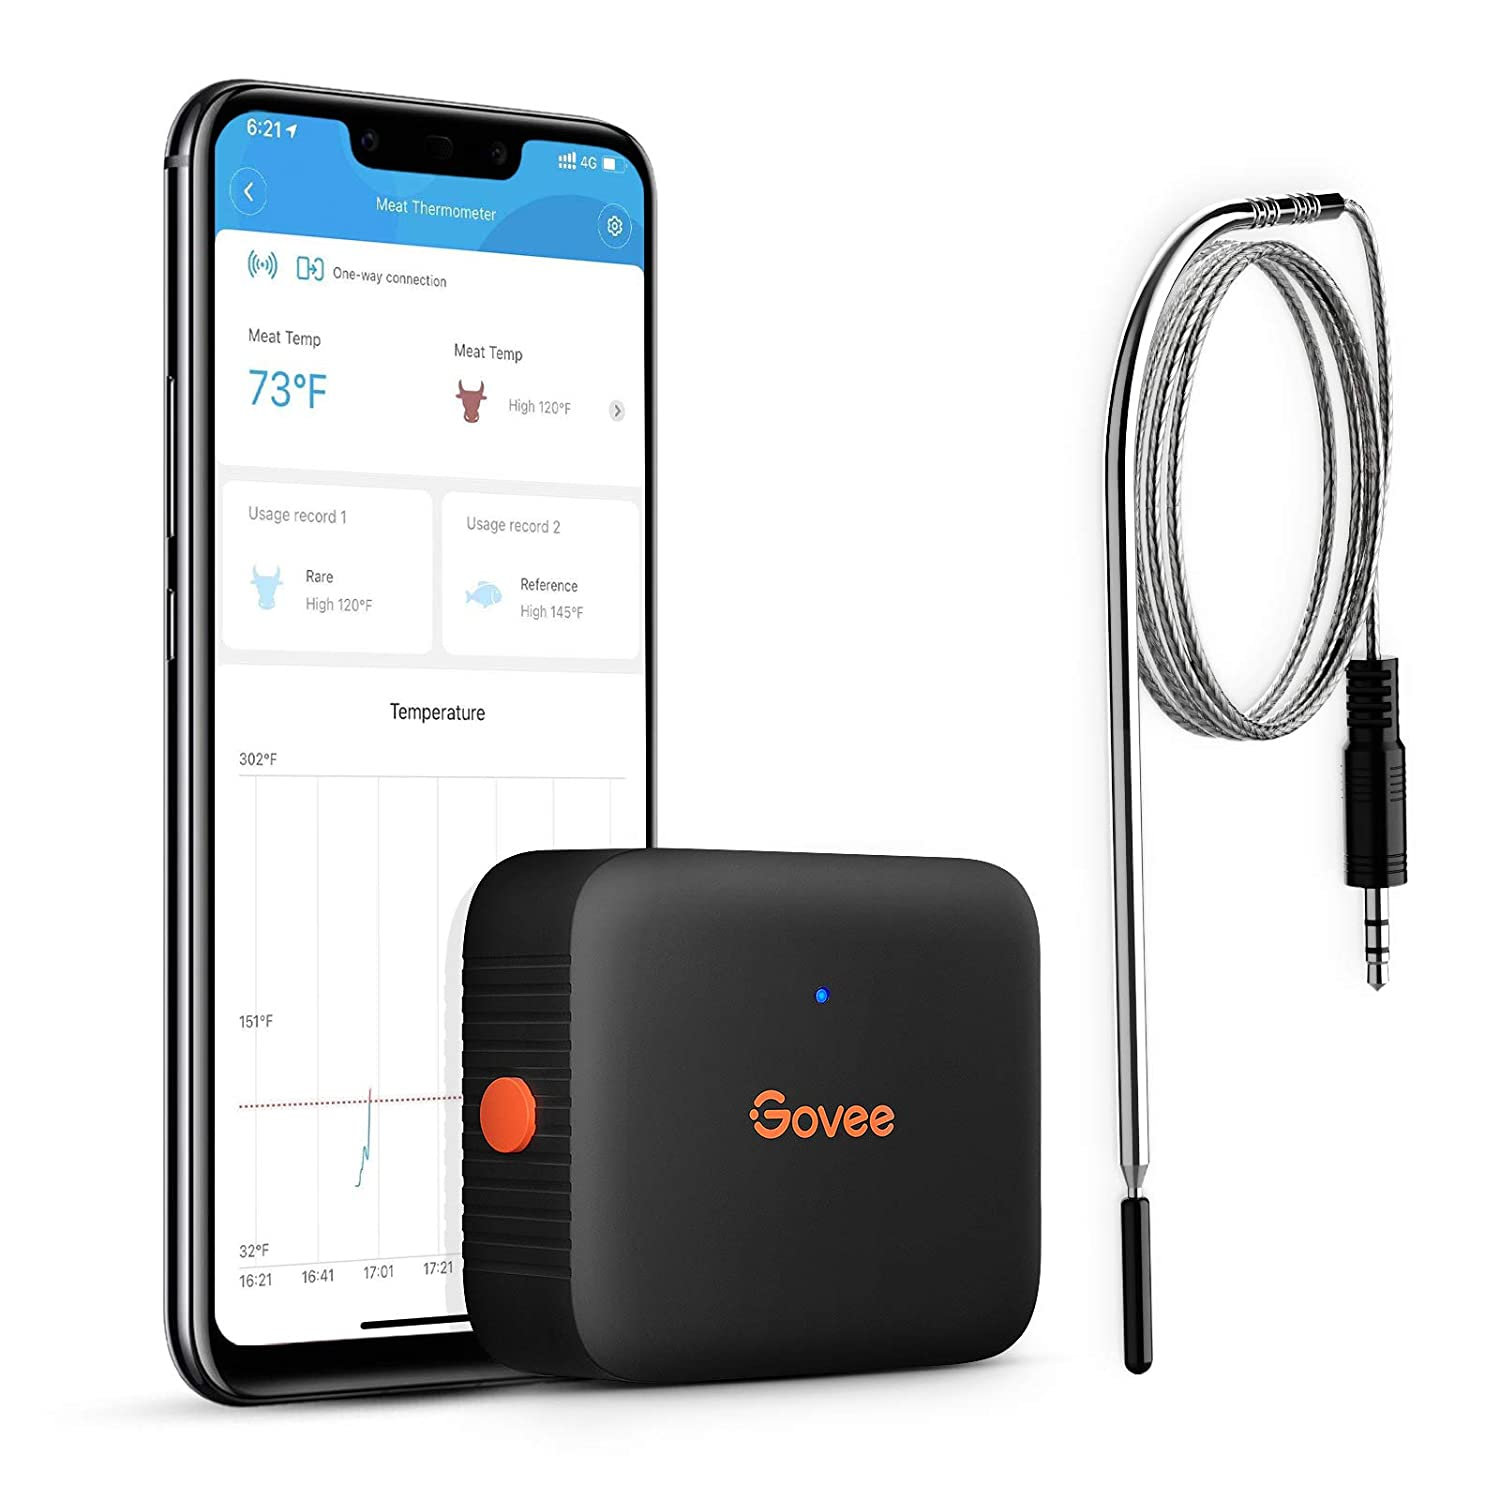 Govee Bluetooth Meat Thermometer, Kitchen Cooking Thermometer with 1 Probe, 230ft Wireless Remote Monitor, Smart Alert Notification for BBQ Grilling Oven